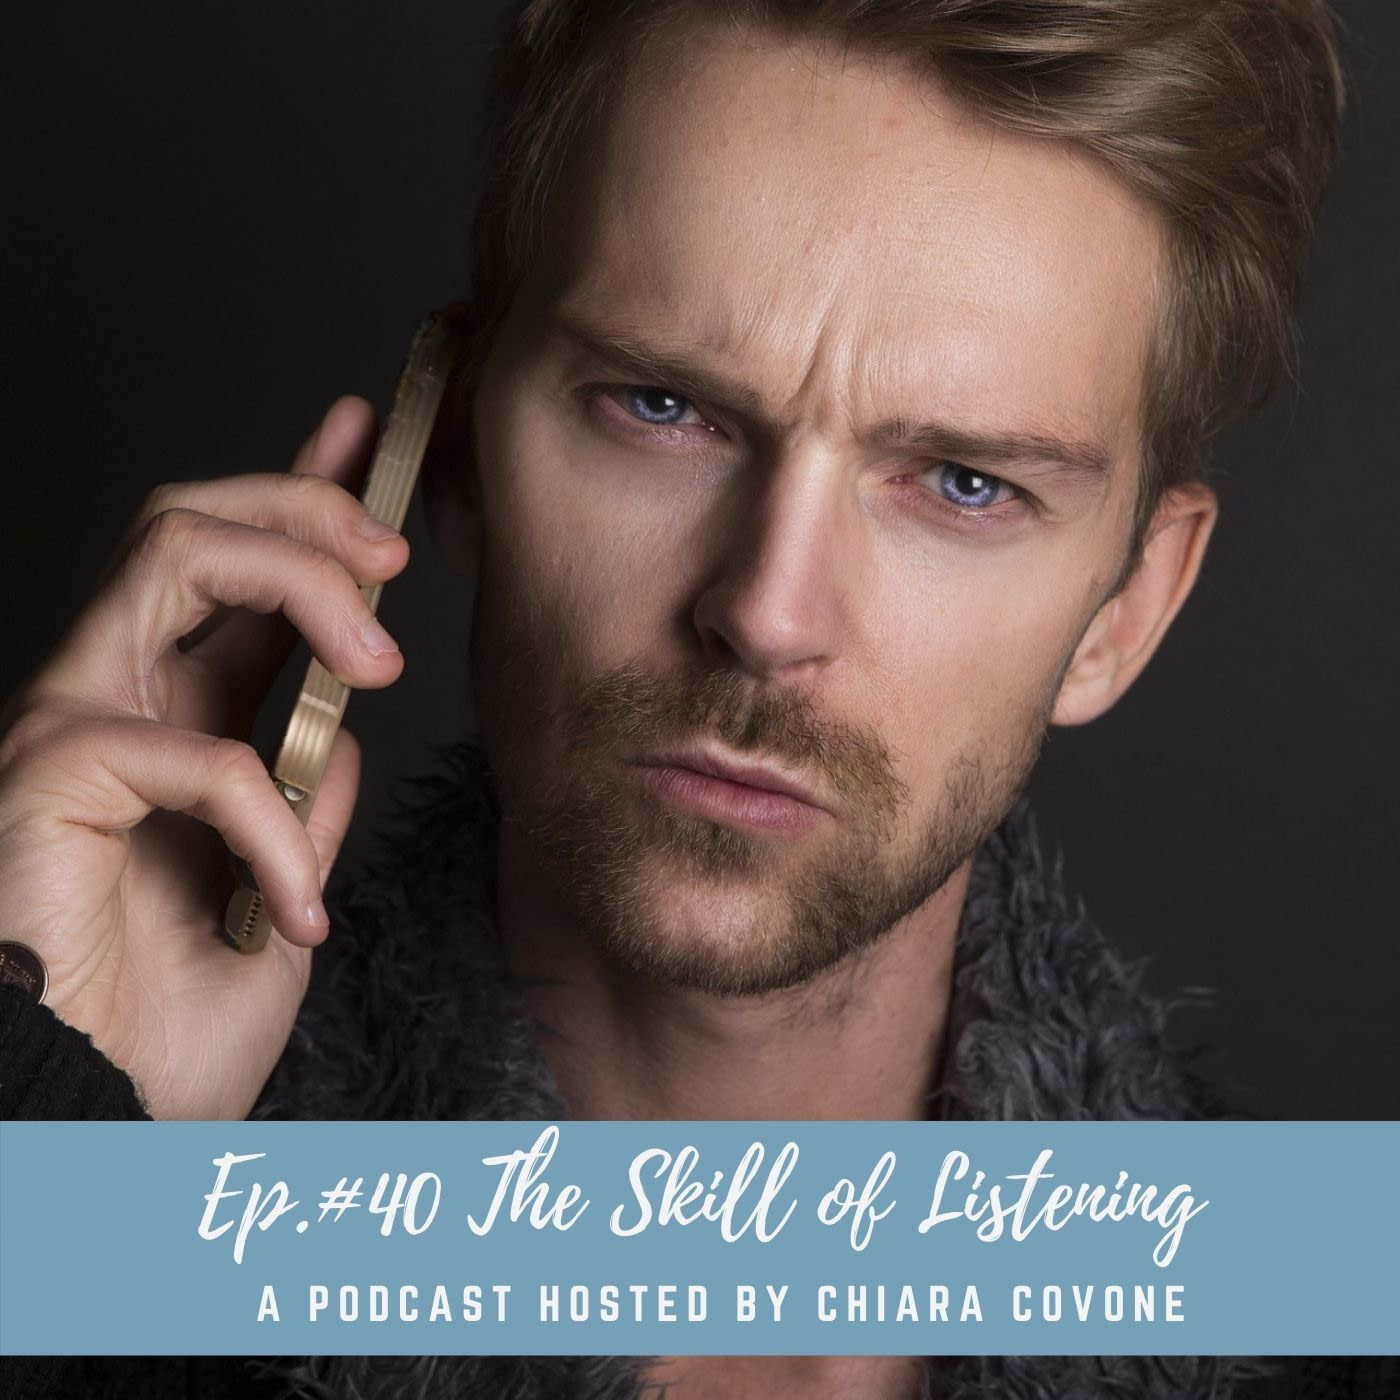 Copy of Podcast Covers-6